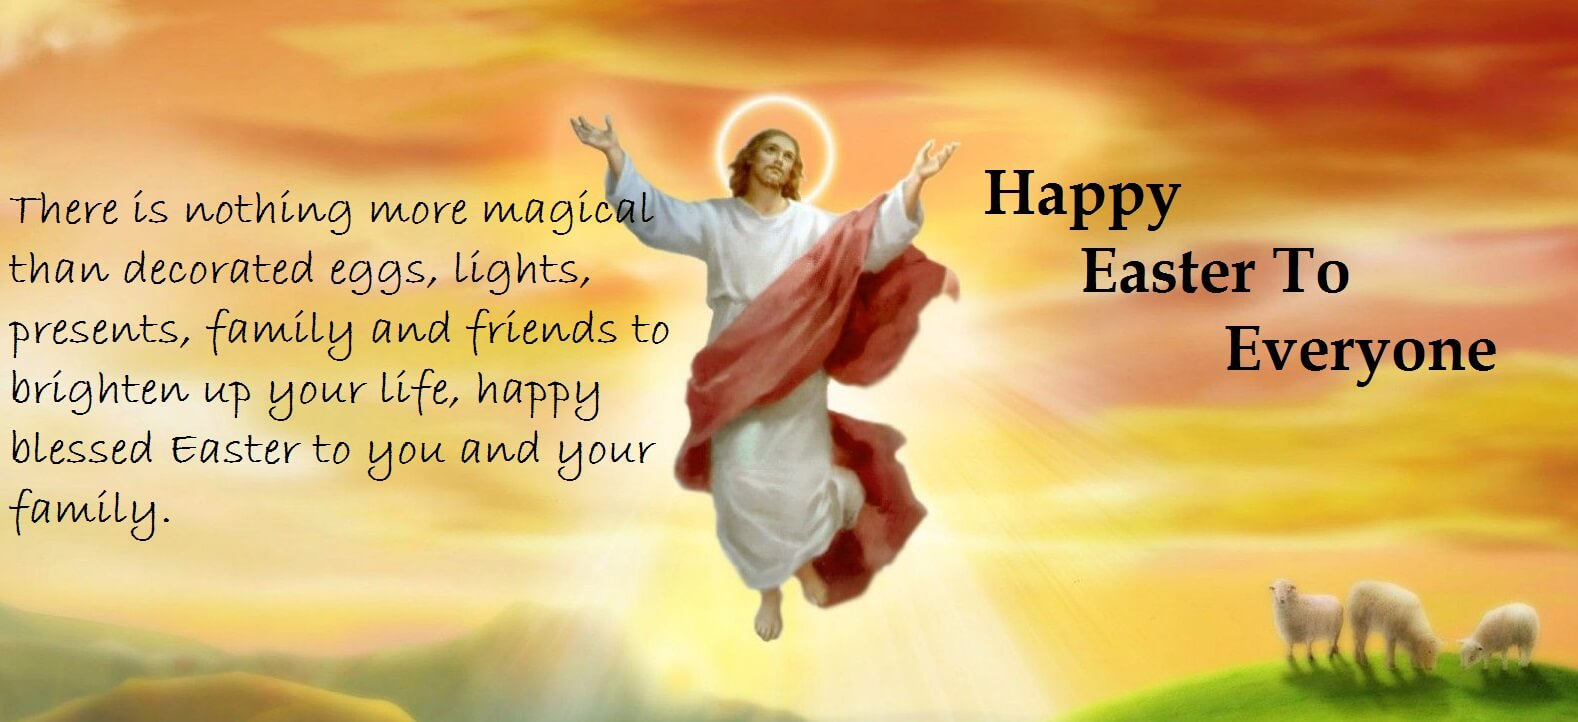 Happy easter 2017 quotes wishes images photos pics best wishes happy easter 2017 best wishes images negle Gallery